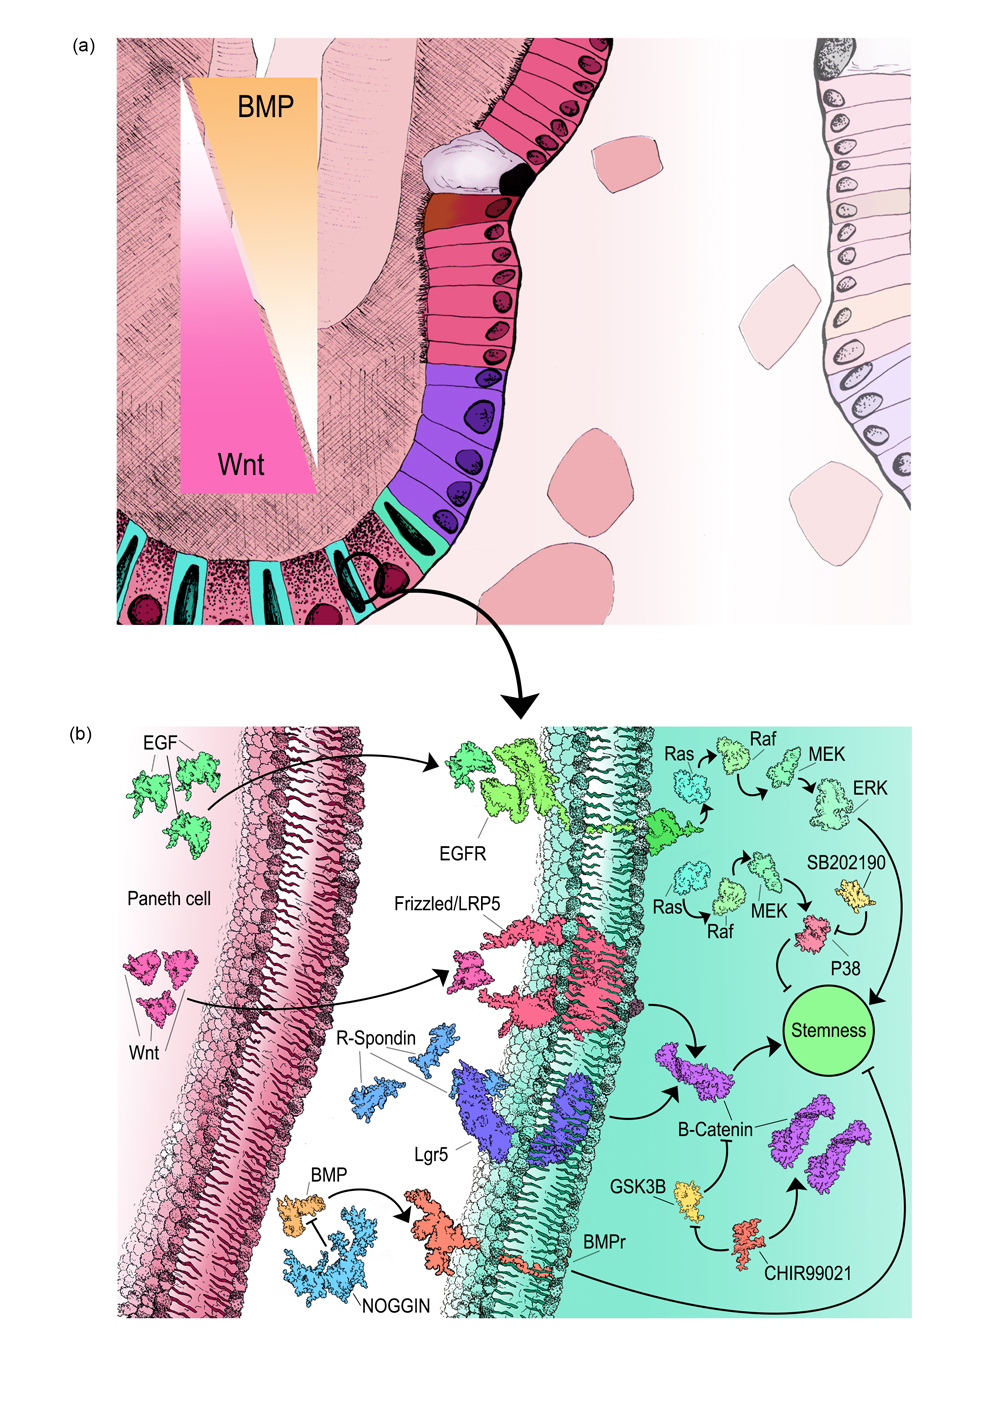 Figure 2: detailing the molecules present in an intestinal stem cell (and their concentration) in order to maintain multipotency.